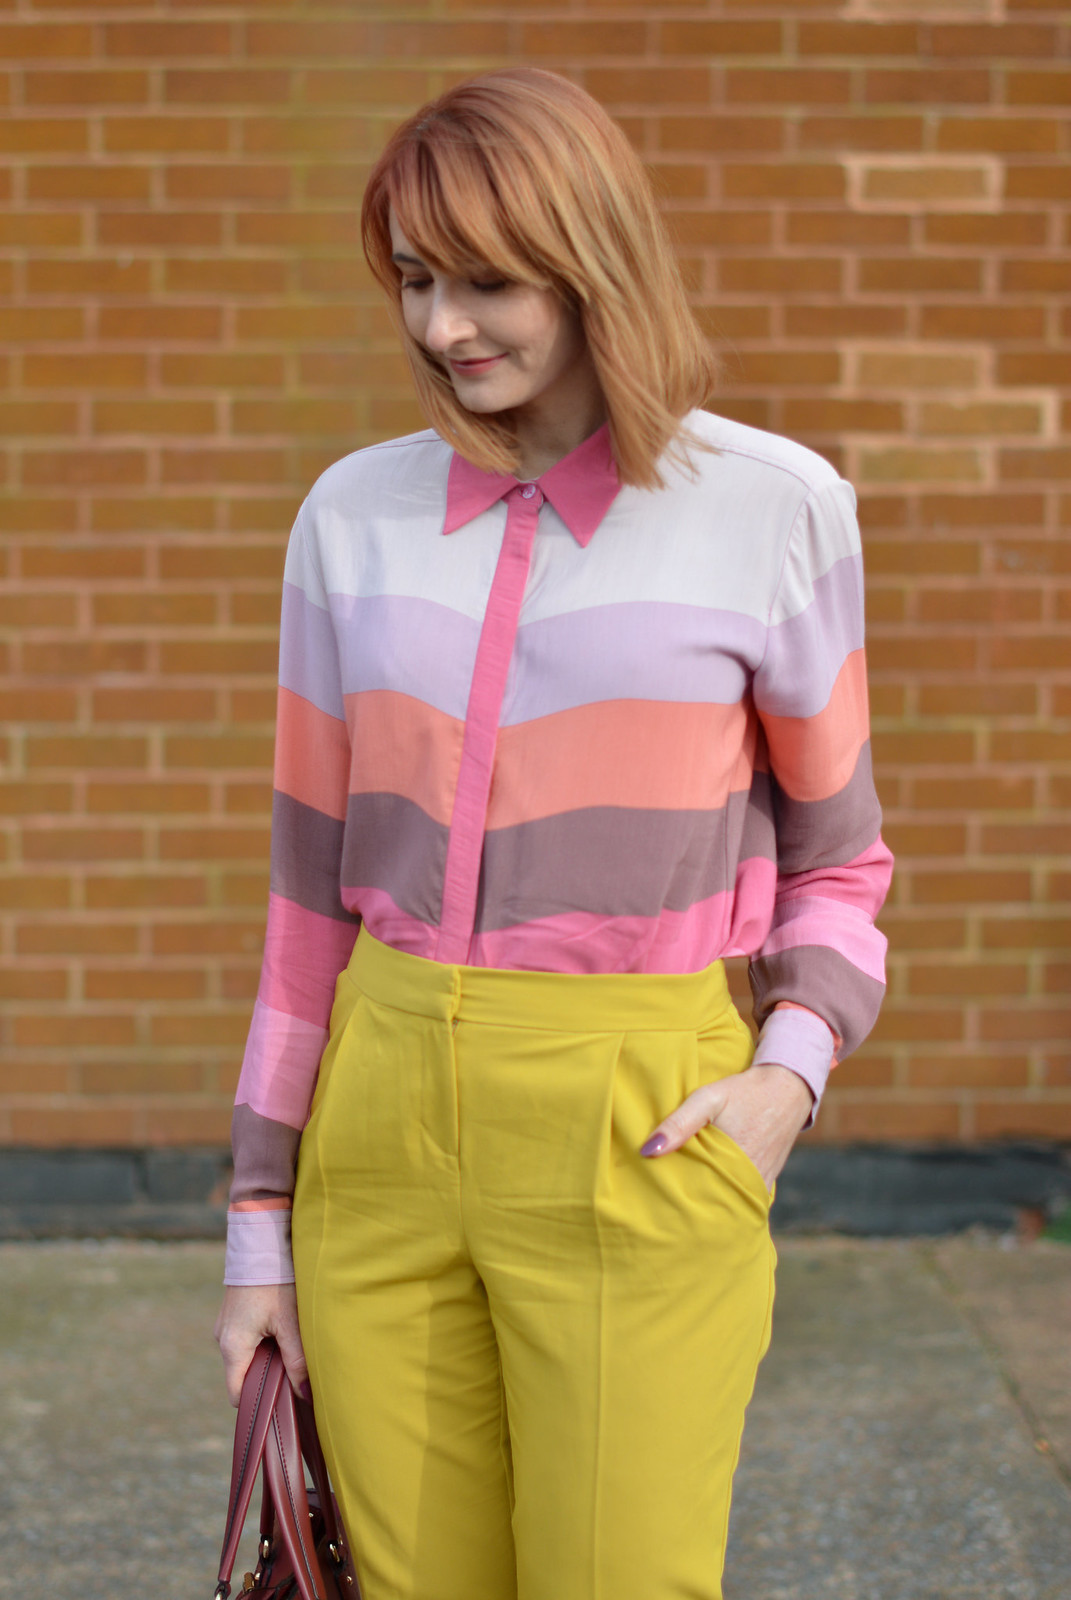 SS16 pastel bright stripes, mustard yellow trousers | Not Dressed As Lamb